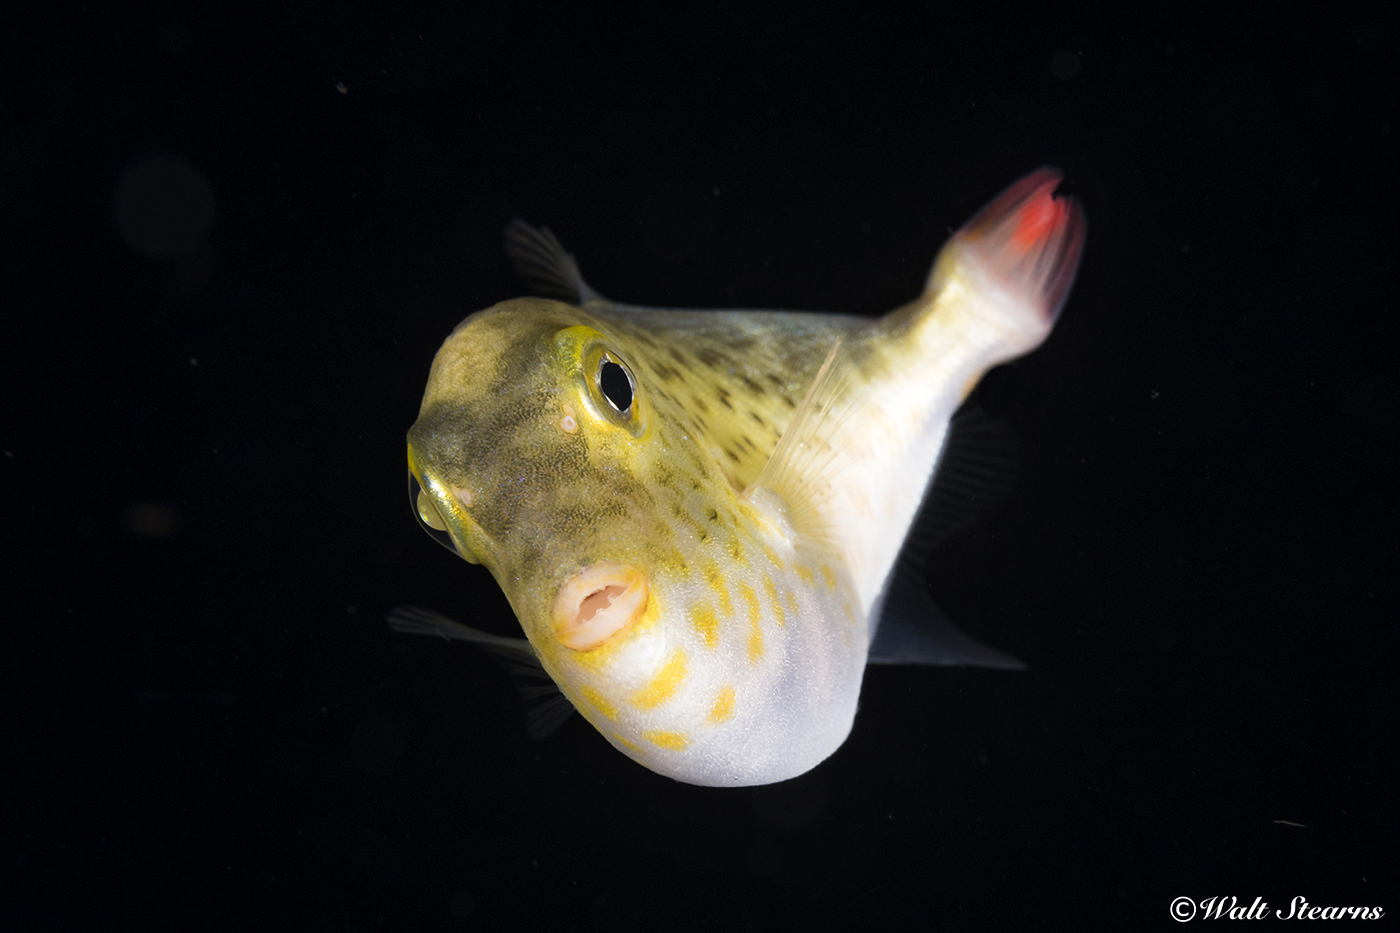 A juvenile sargassum triggerfish uses its yellow coloration to blend into the floating beds of sargassum weeds where it spends its first months of life, feeding on plankton and hunting small invertebrates.